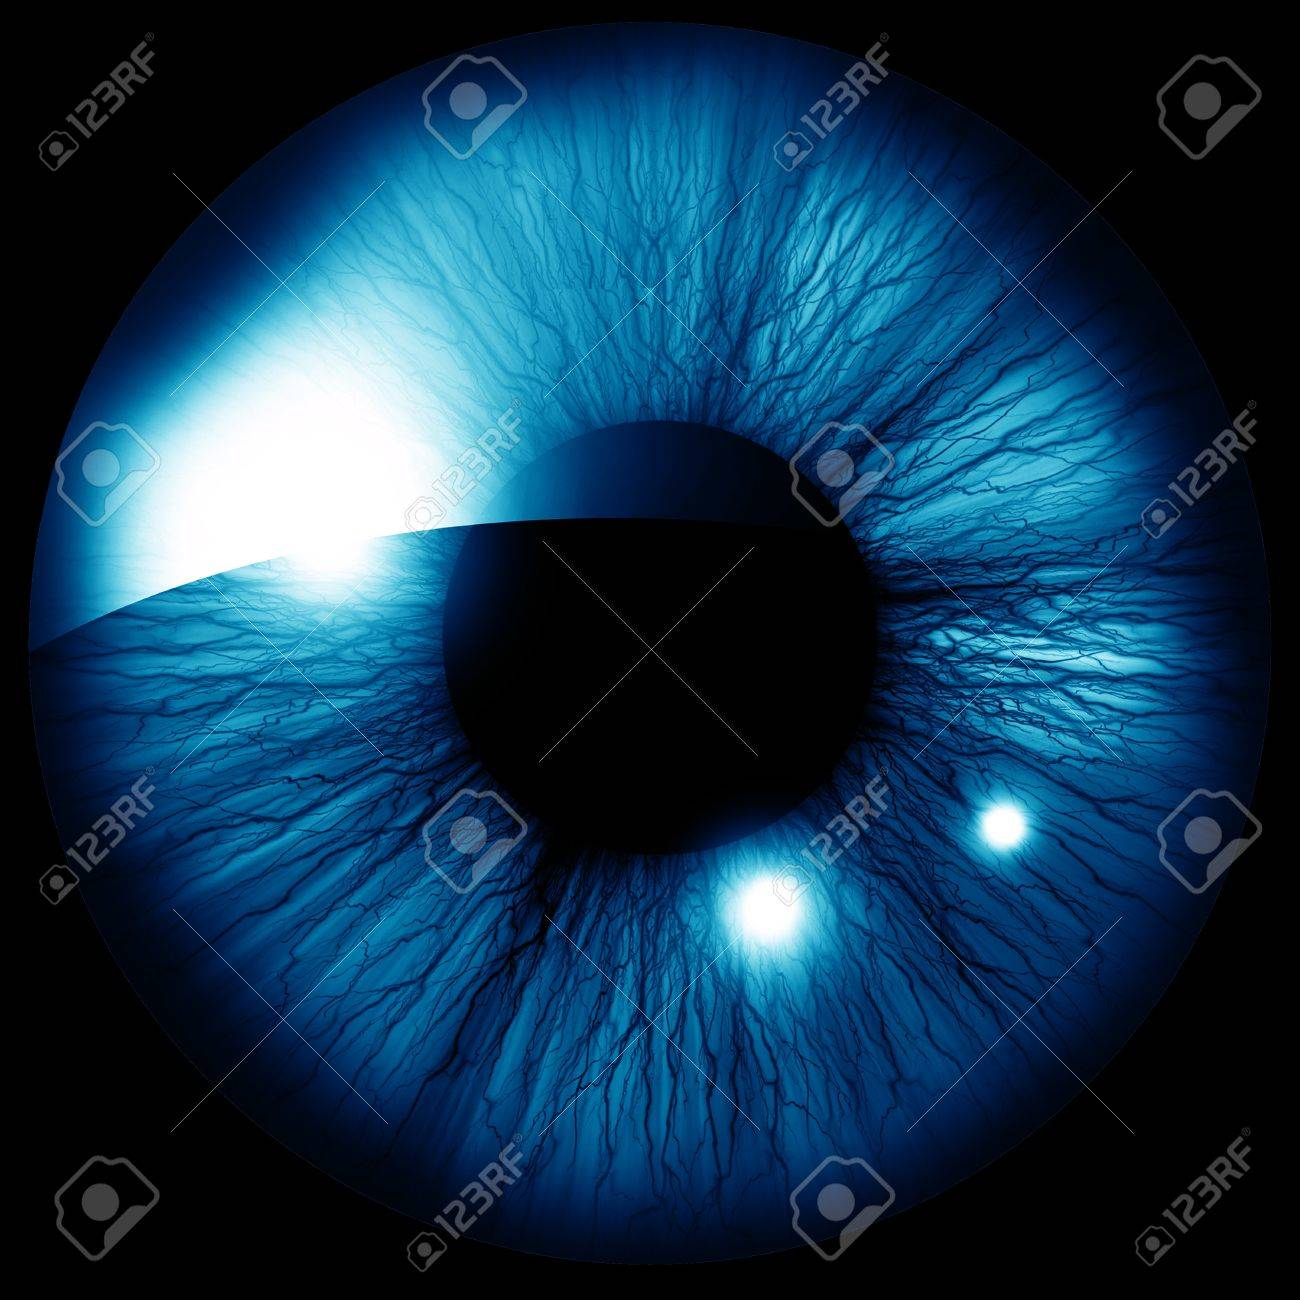 Human iris with some highlights and reflections Stock Photo - 15009674